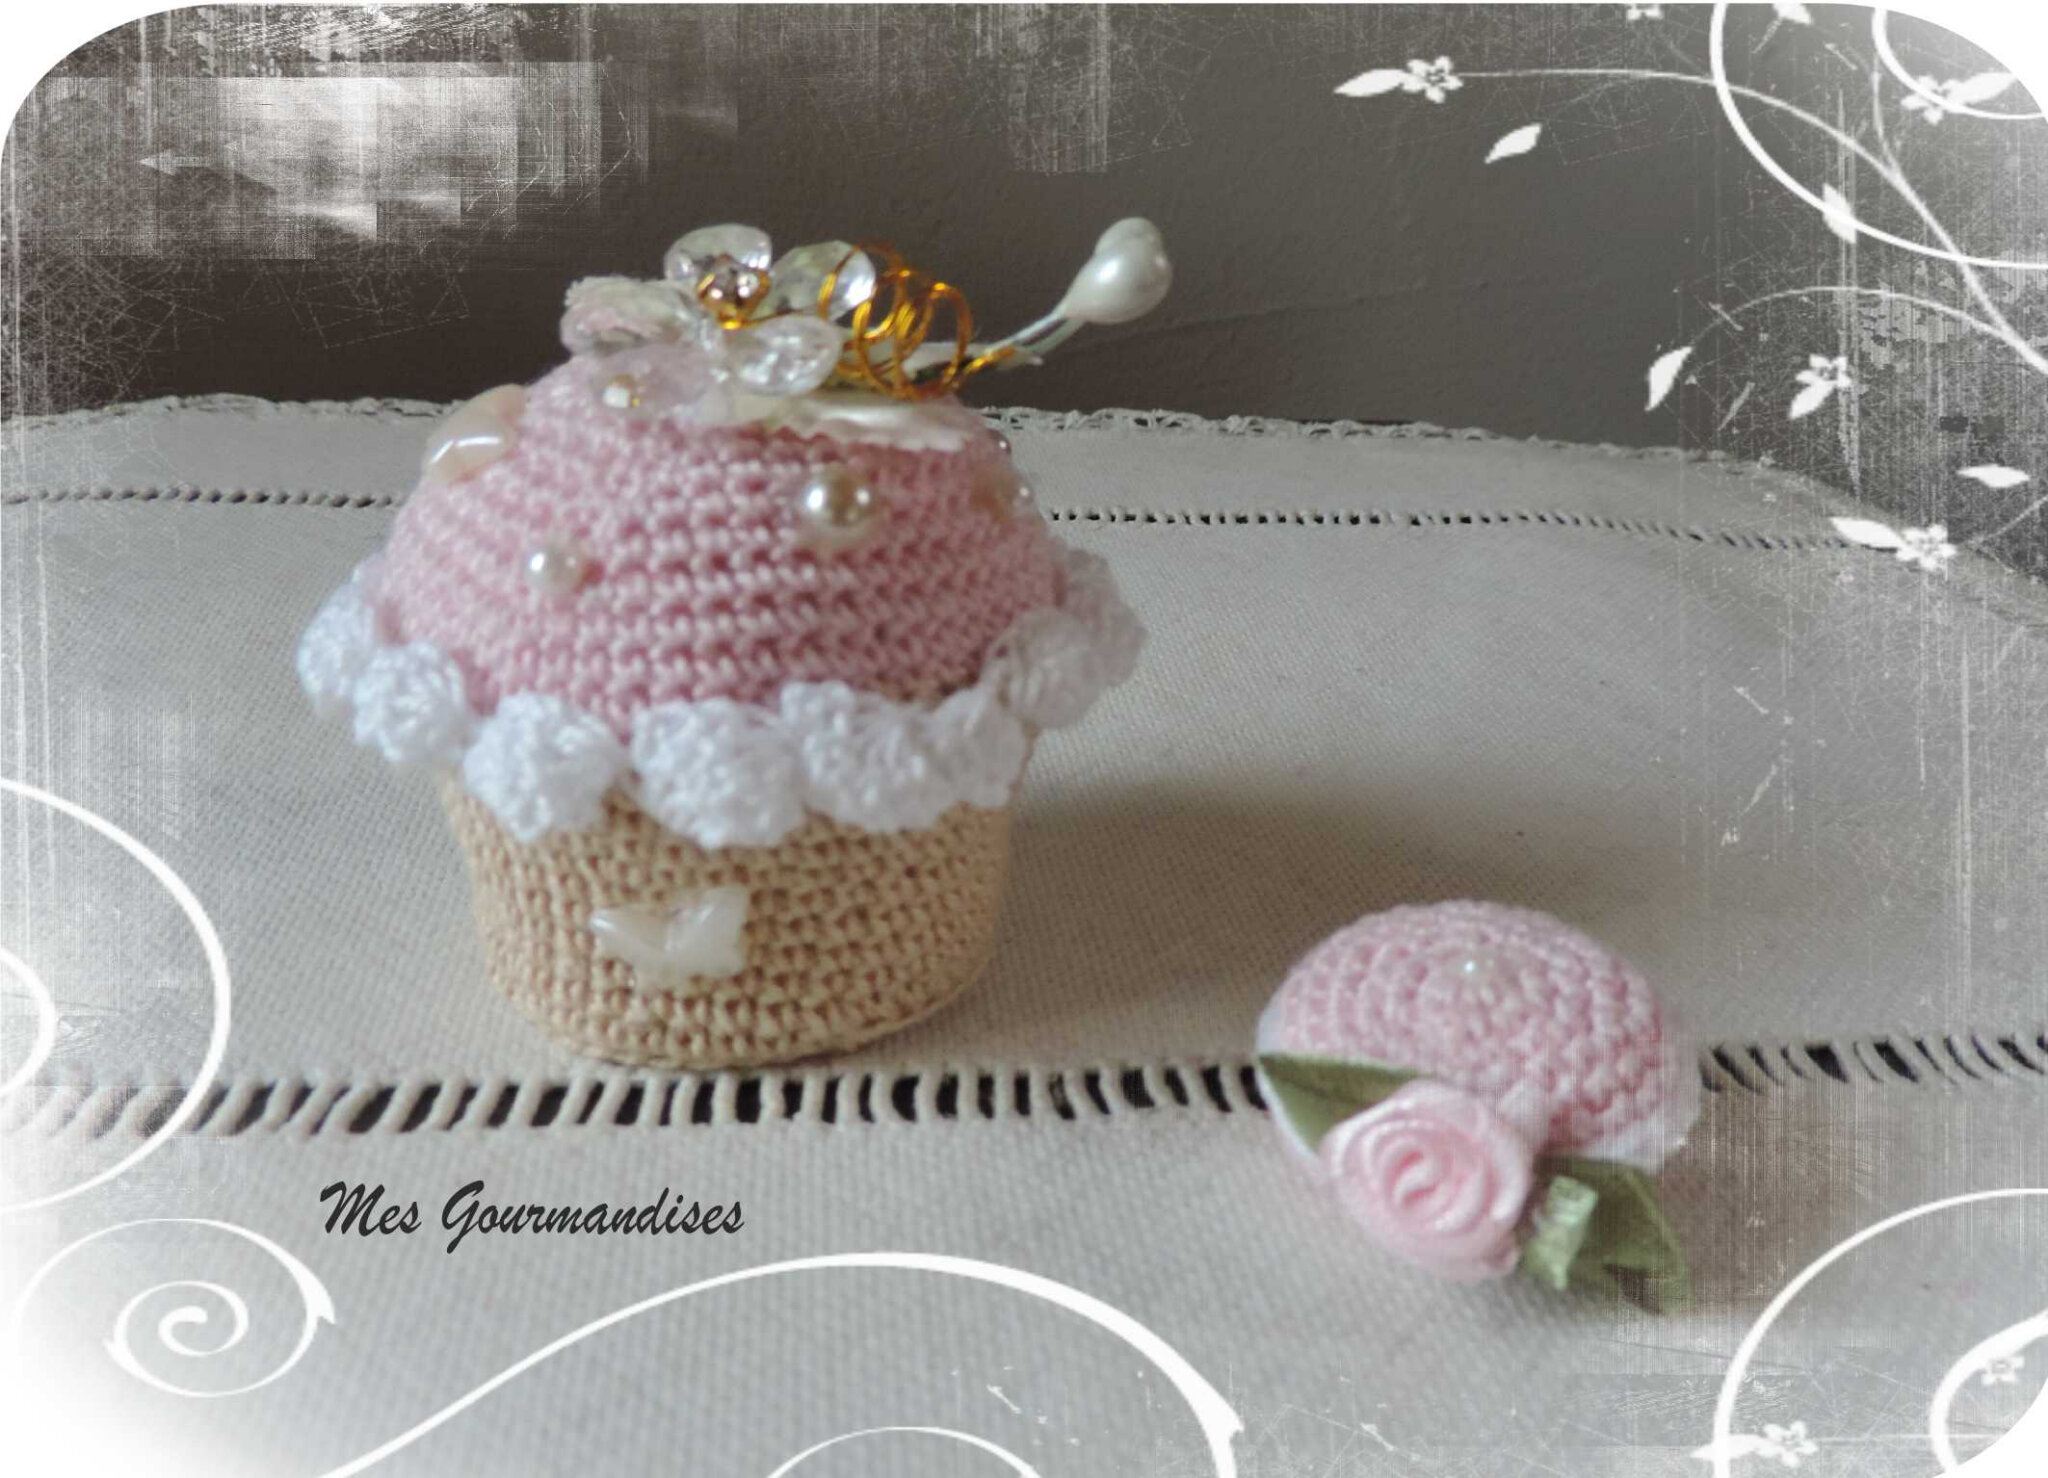 Mes premiers Cup Cake & Macaron * Oct. 2019